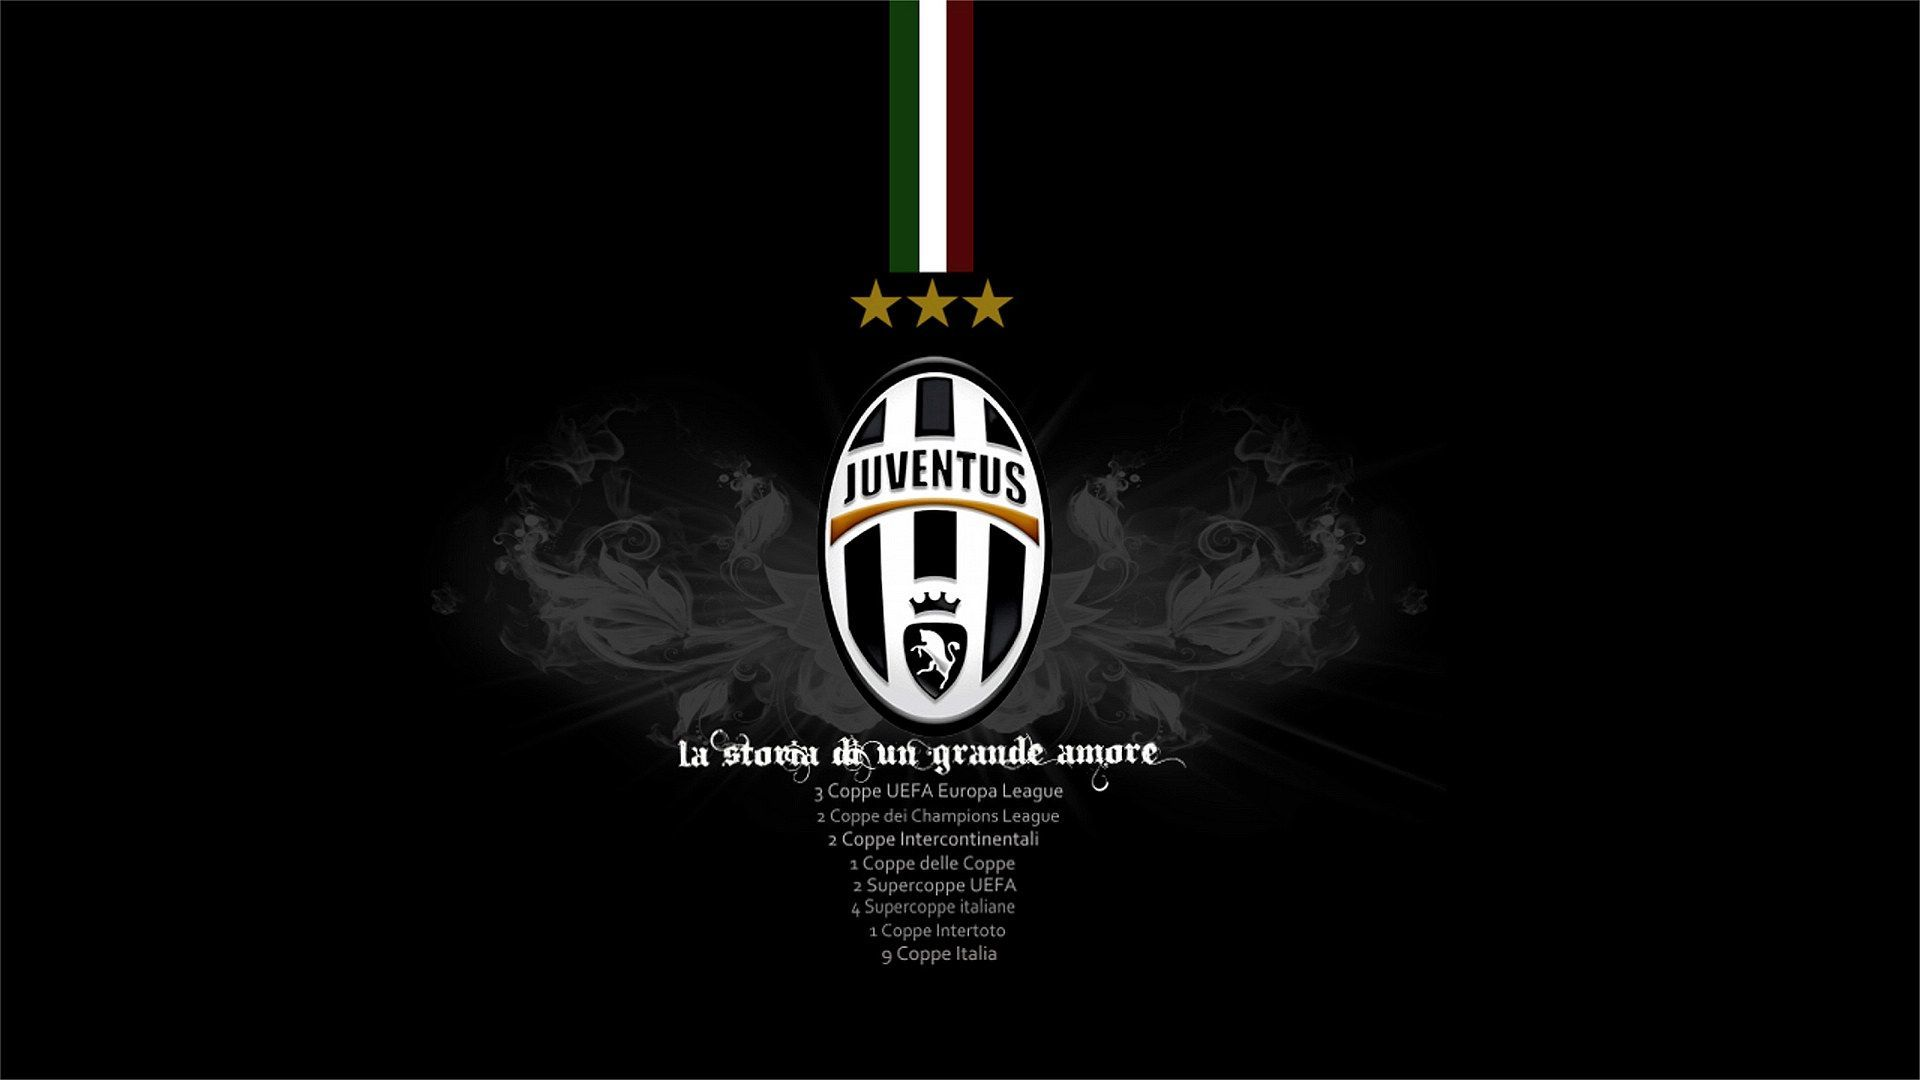 juventus wallpaper for mobile best wallpaper hd juventus wallpapers juventus hd wallpaper best wallpaper hd juventus wallpapers